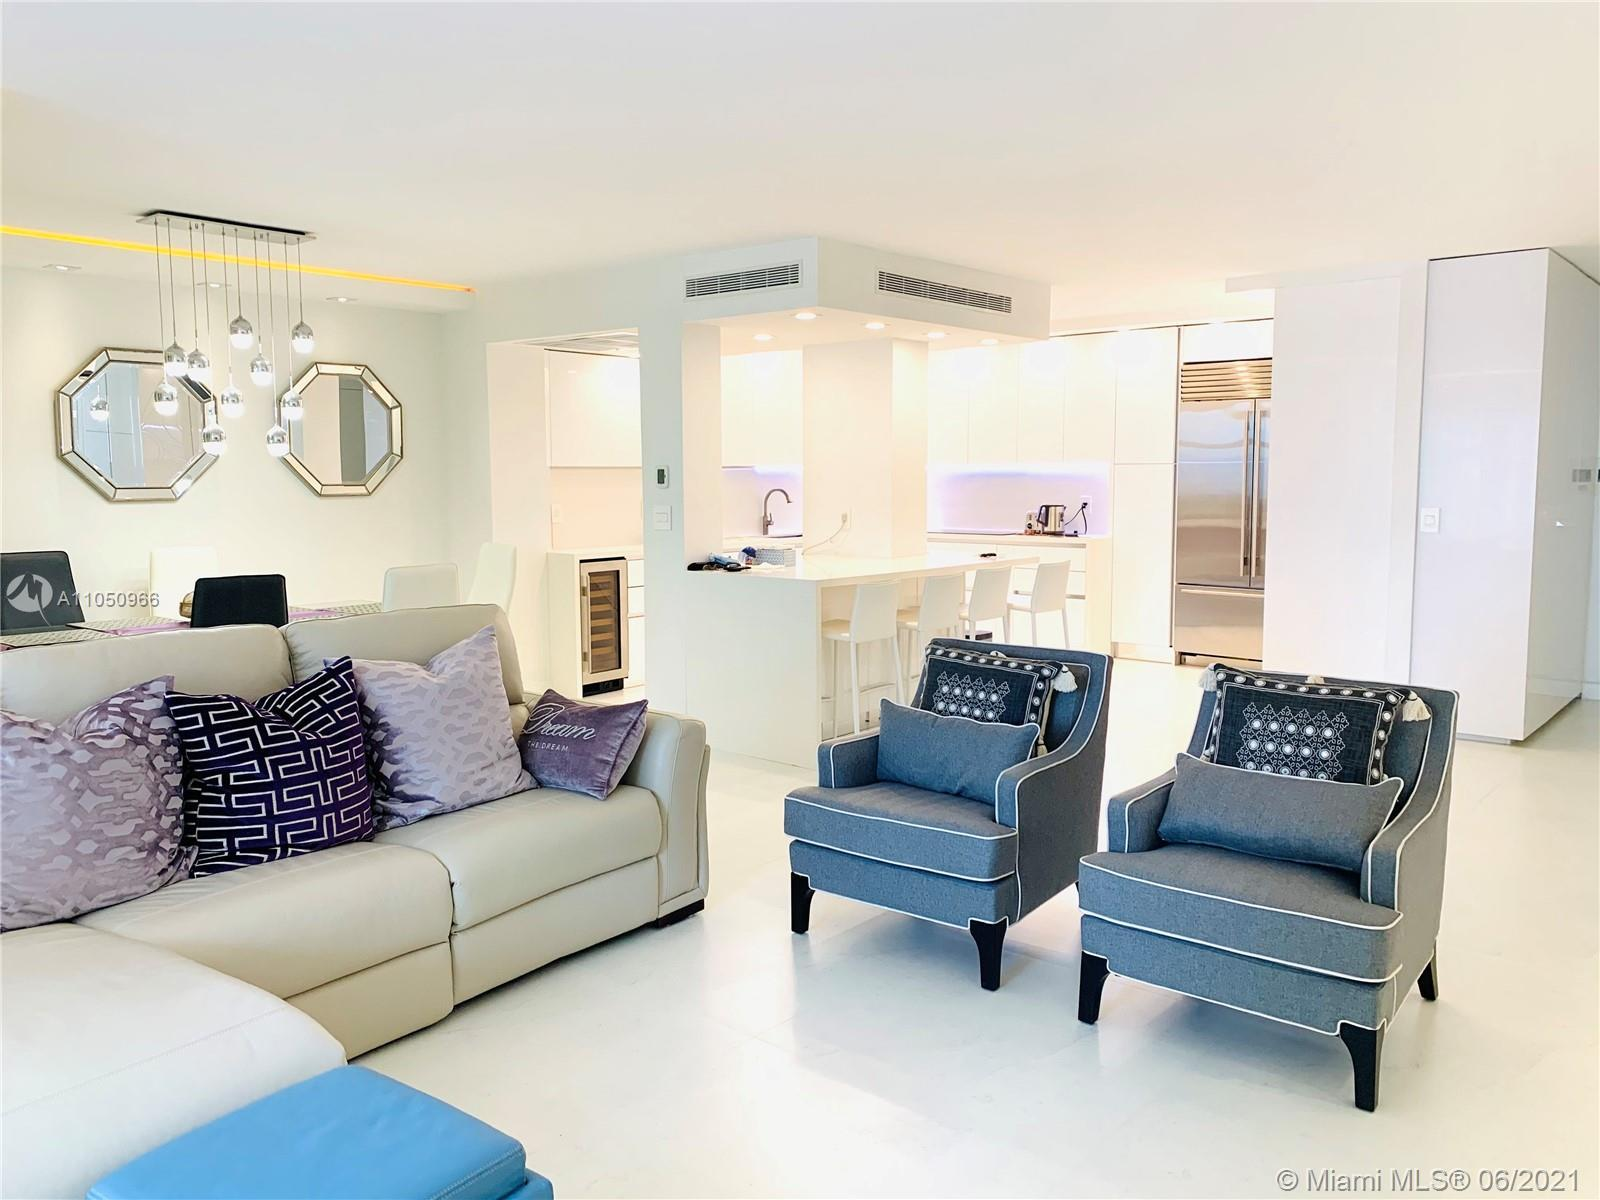 Balmoral is a luxury 23-story oceanfront condominium building located in a heart of Bal Harbour. Mod